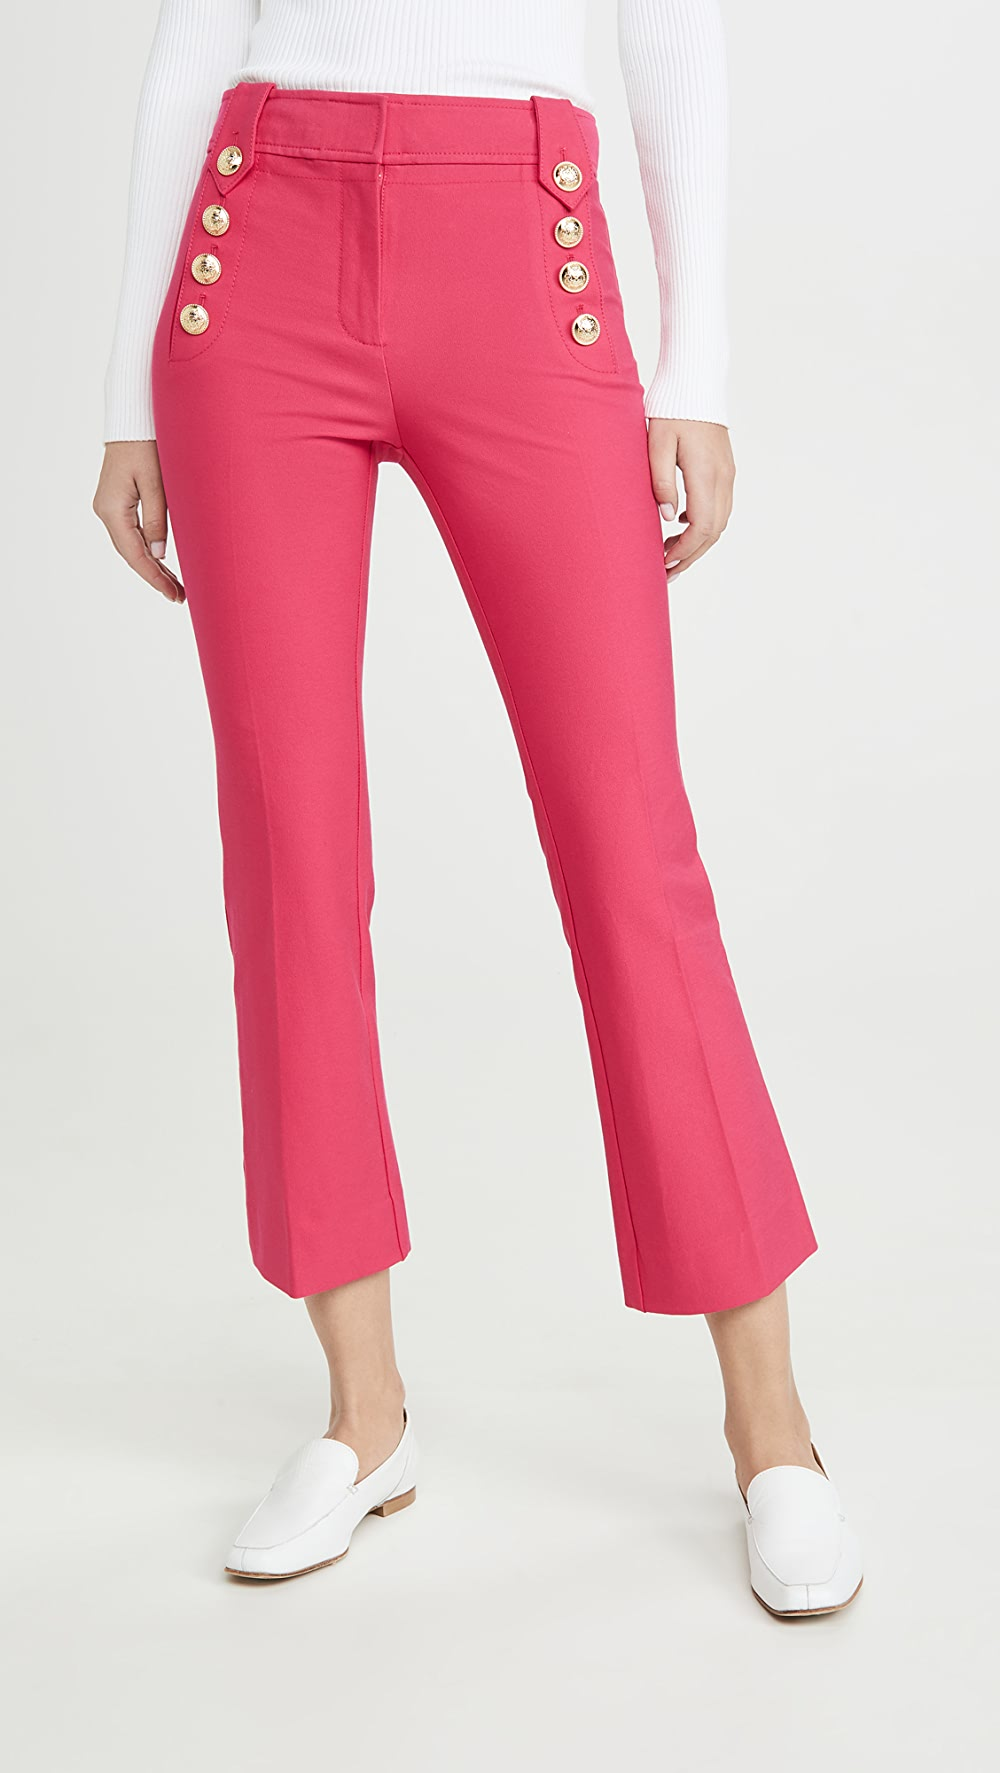 Able Derek Lam 10 Crosby - Robertson Cropped Flare Trousers With Sailor Buttons Wide Varieties